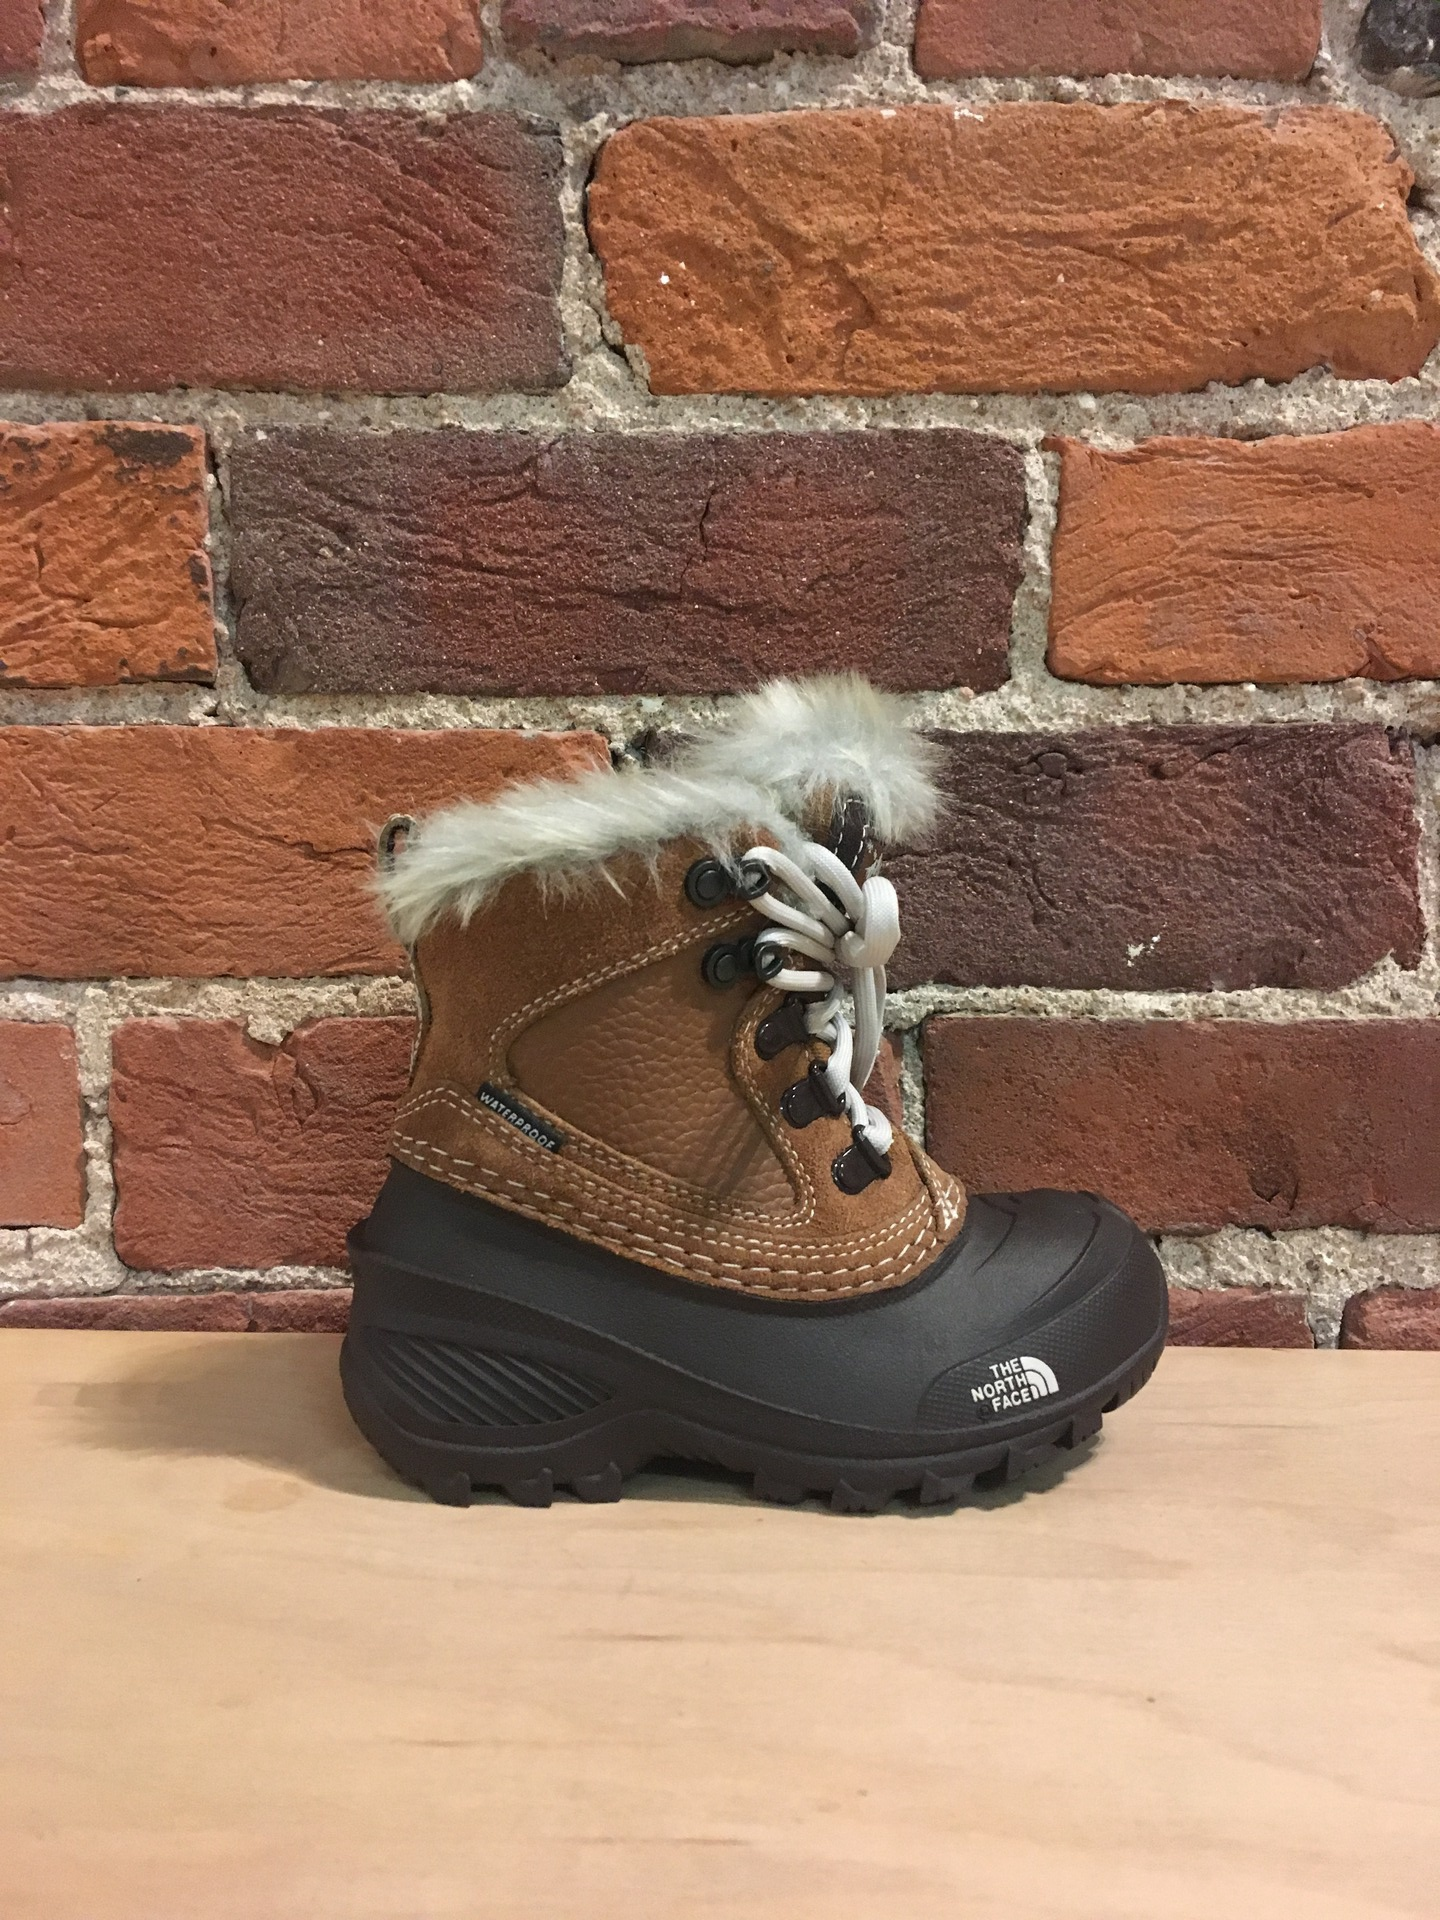 THE NORTH FACE - YOUTH SHELLISTA EXTREME IN DASCHUND BROWN/MOONLIGHT IVORY